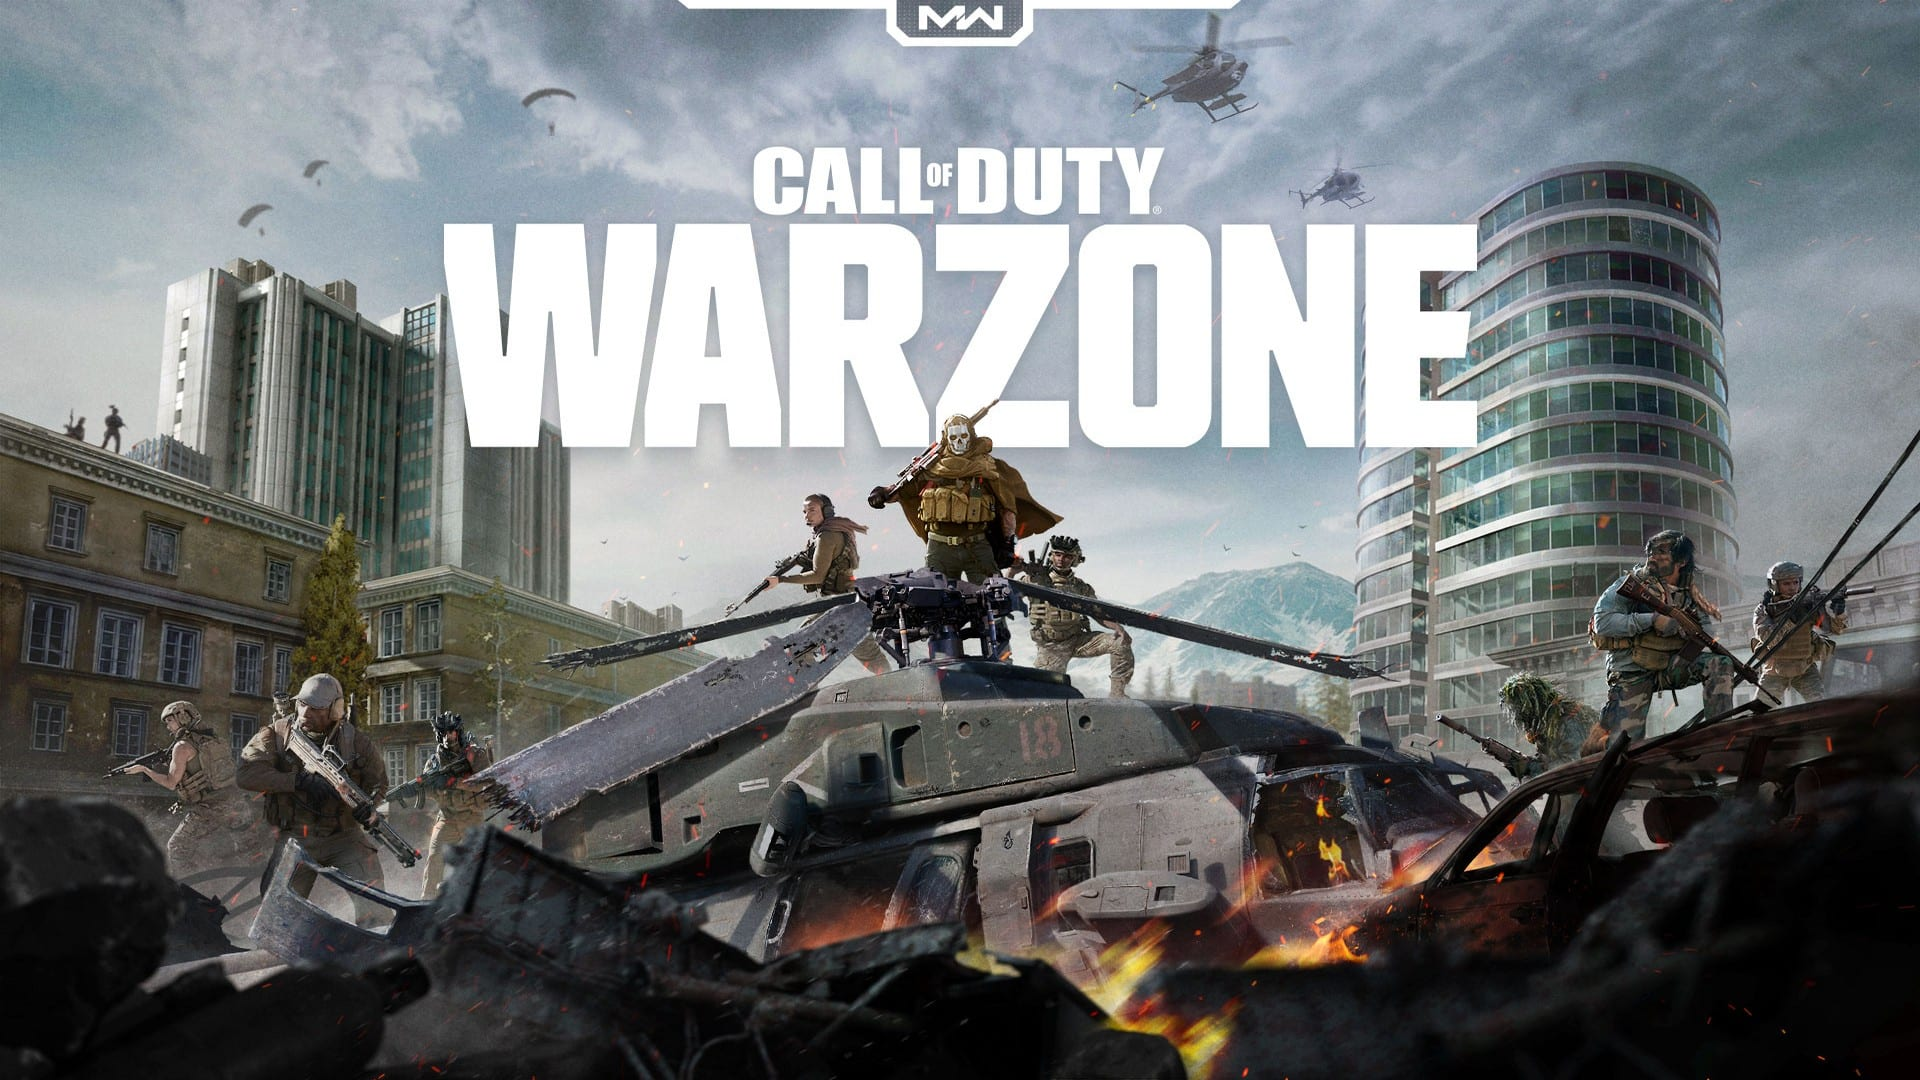 Call Of Duty Delivers Game-Changing Free-To-Play Experience With Call Of Duty: Warzone – Available Now